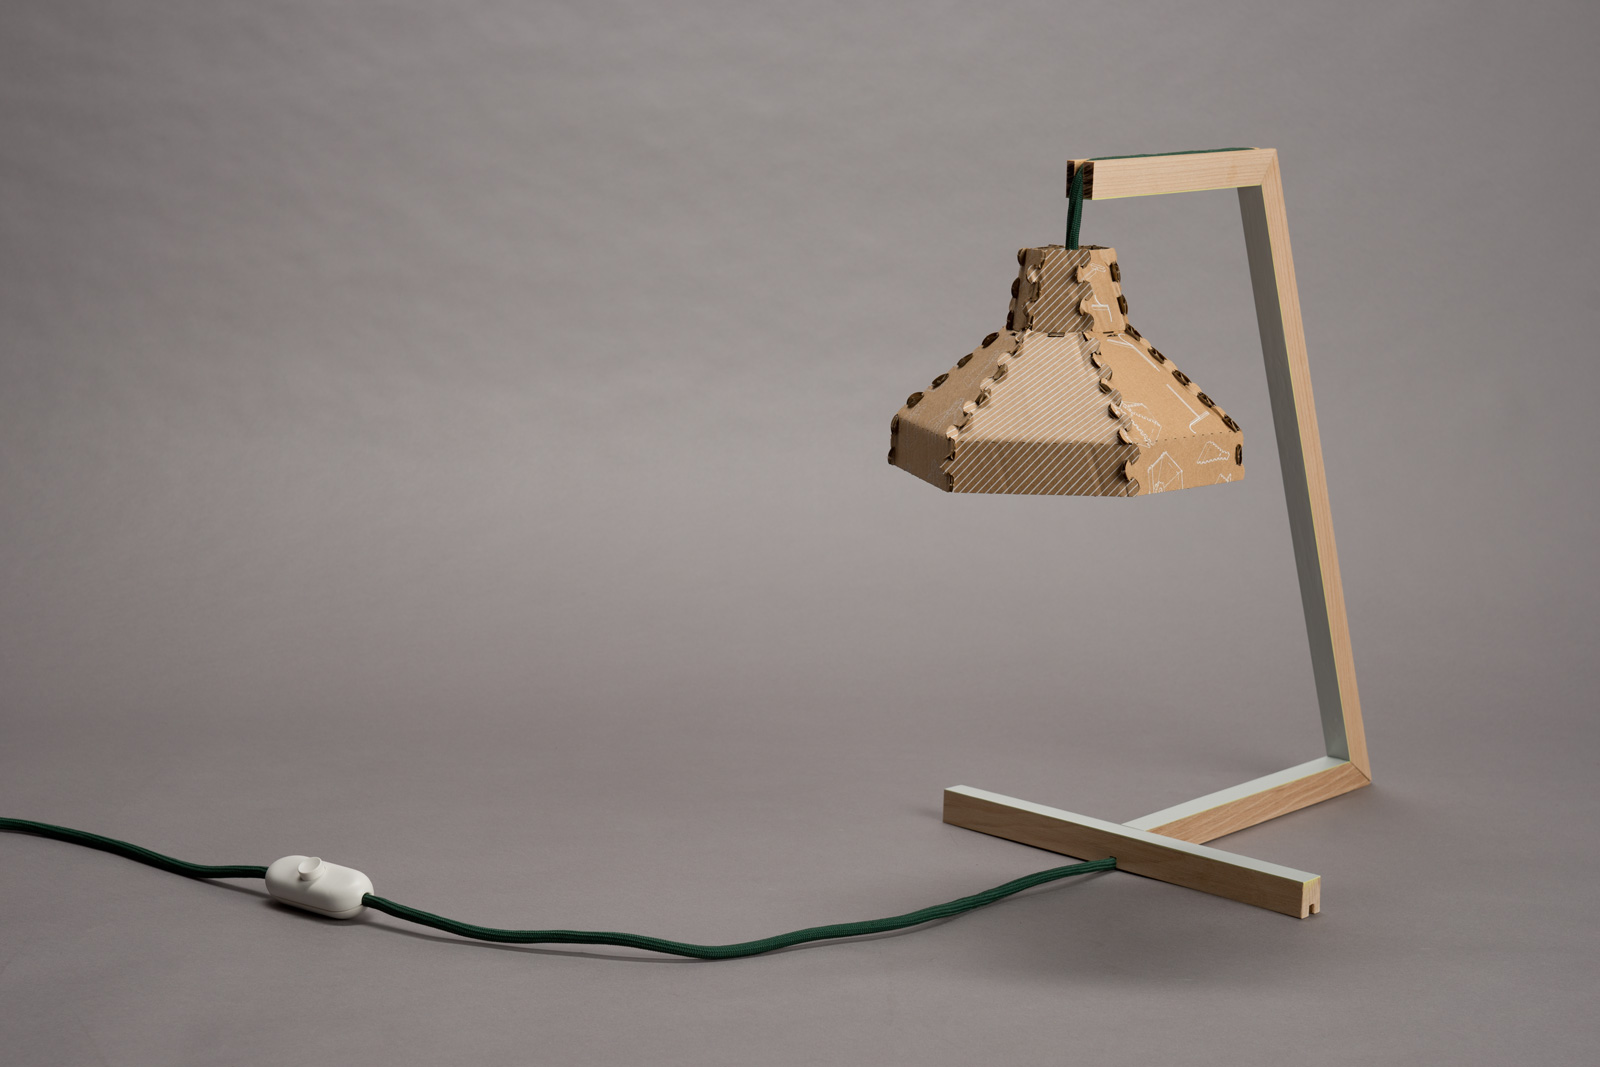 Sven Rose Cantilever table lamp